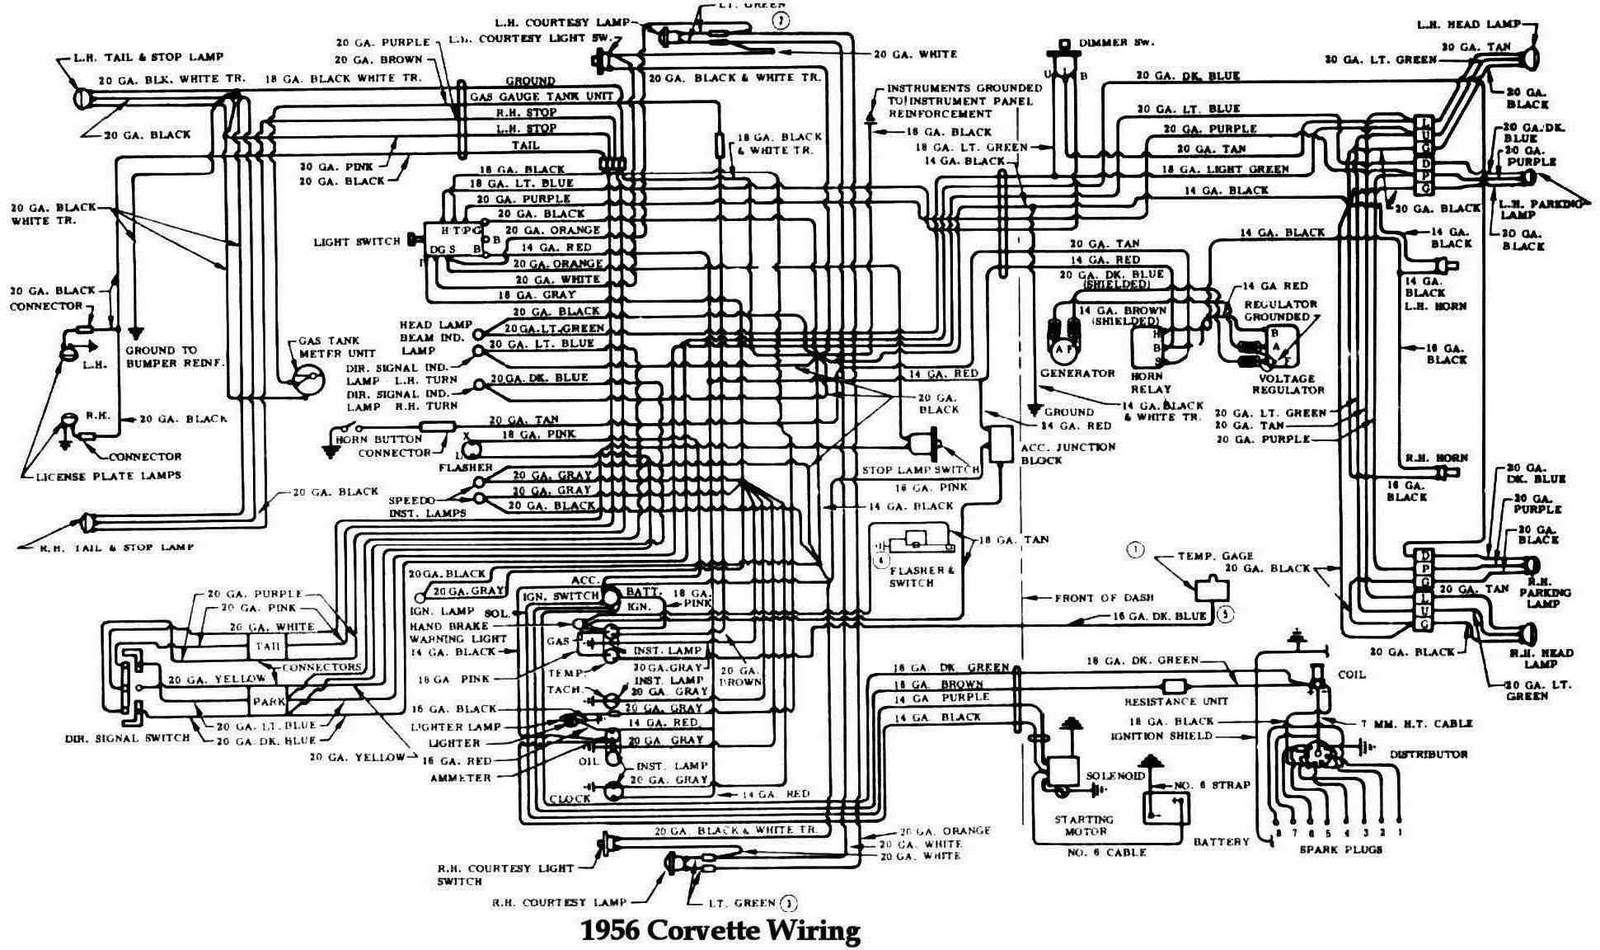 77 Corvette Wiring Diagram on 1967 cadillac alternator wiring diagram